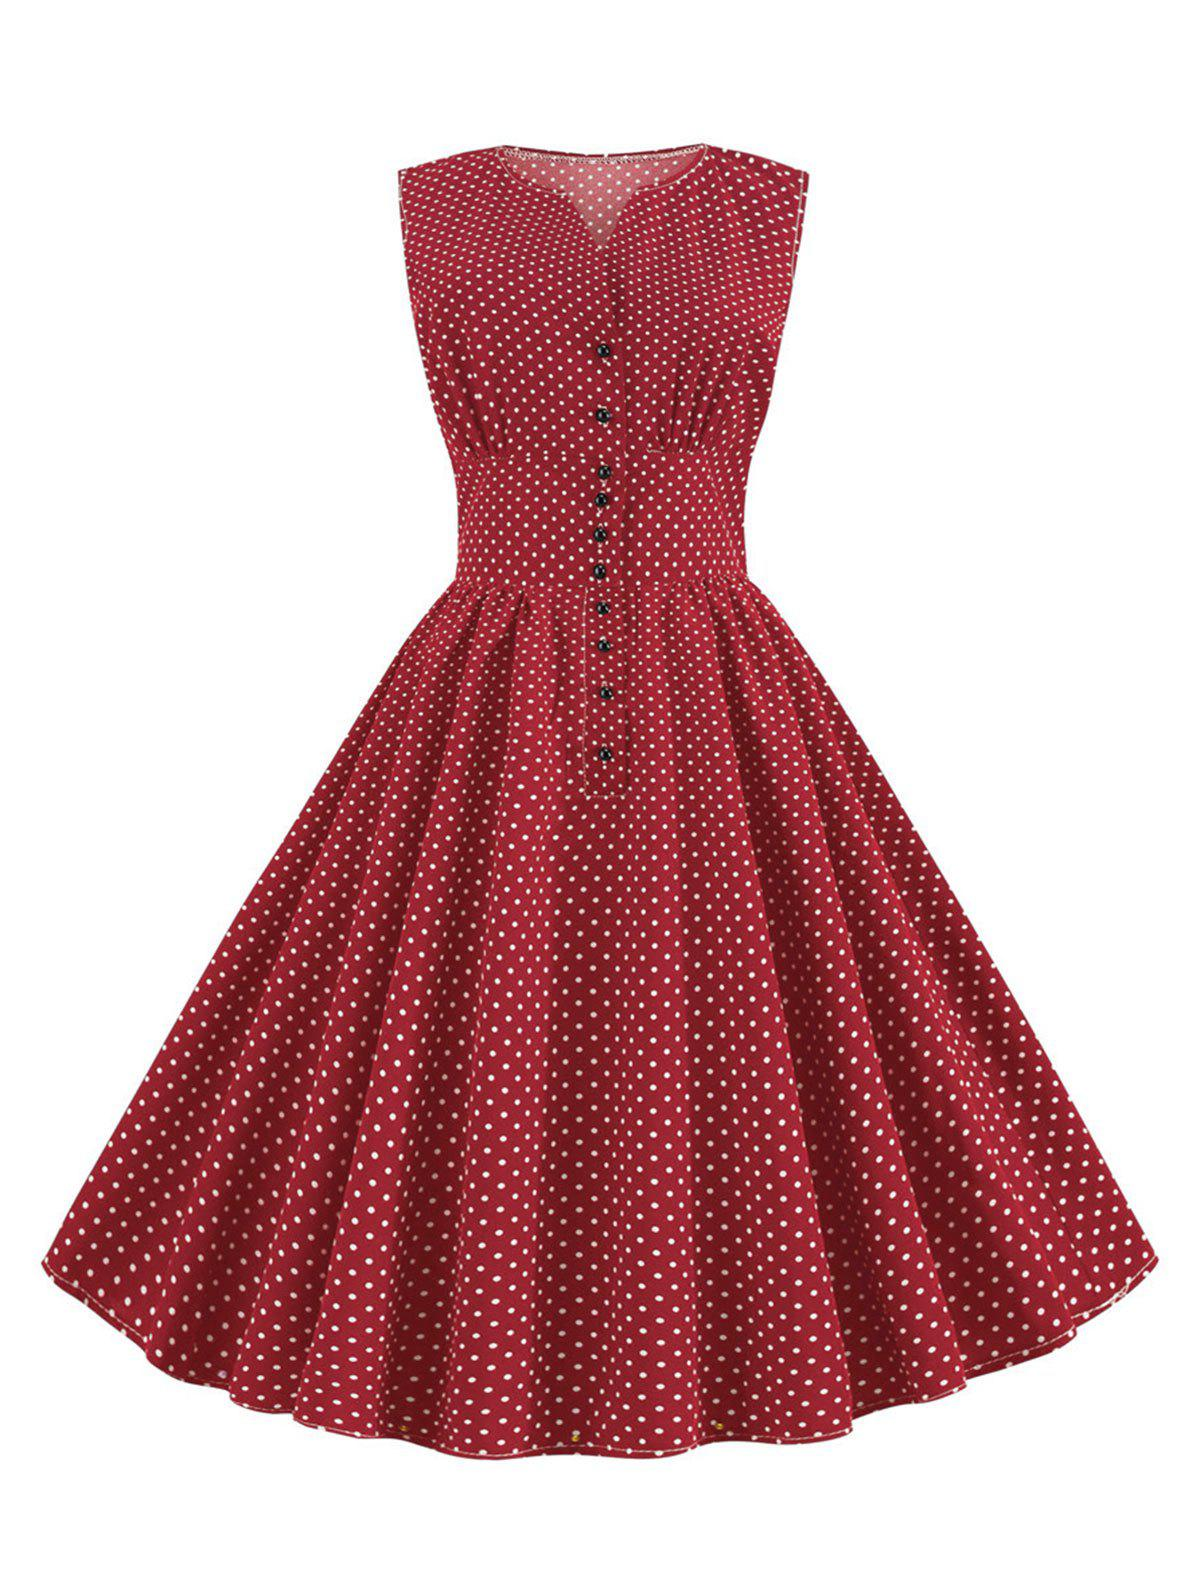 Ditsy Polka Dot Vintage A Line Button Front Dress - RED M